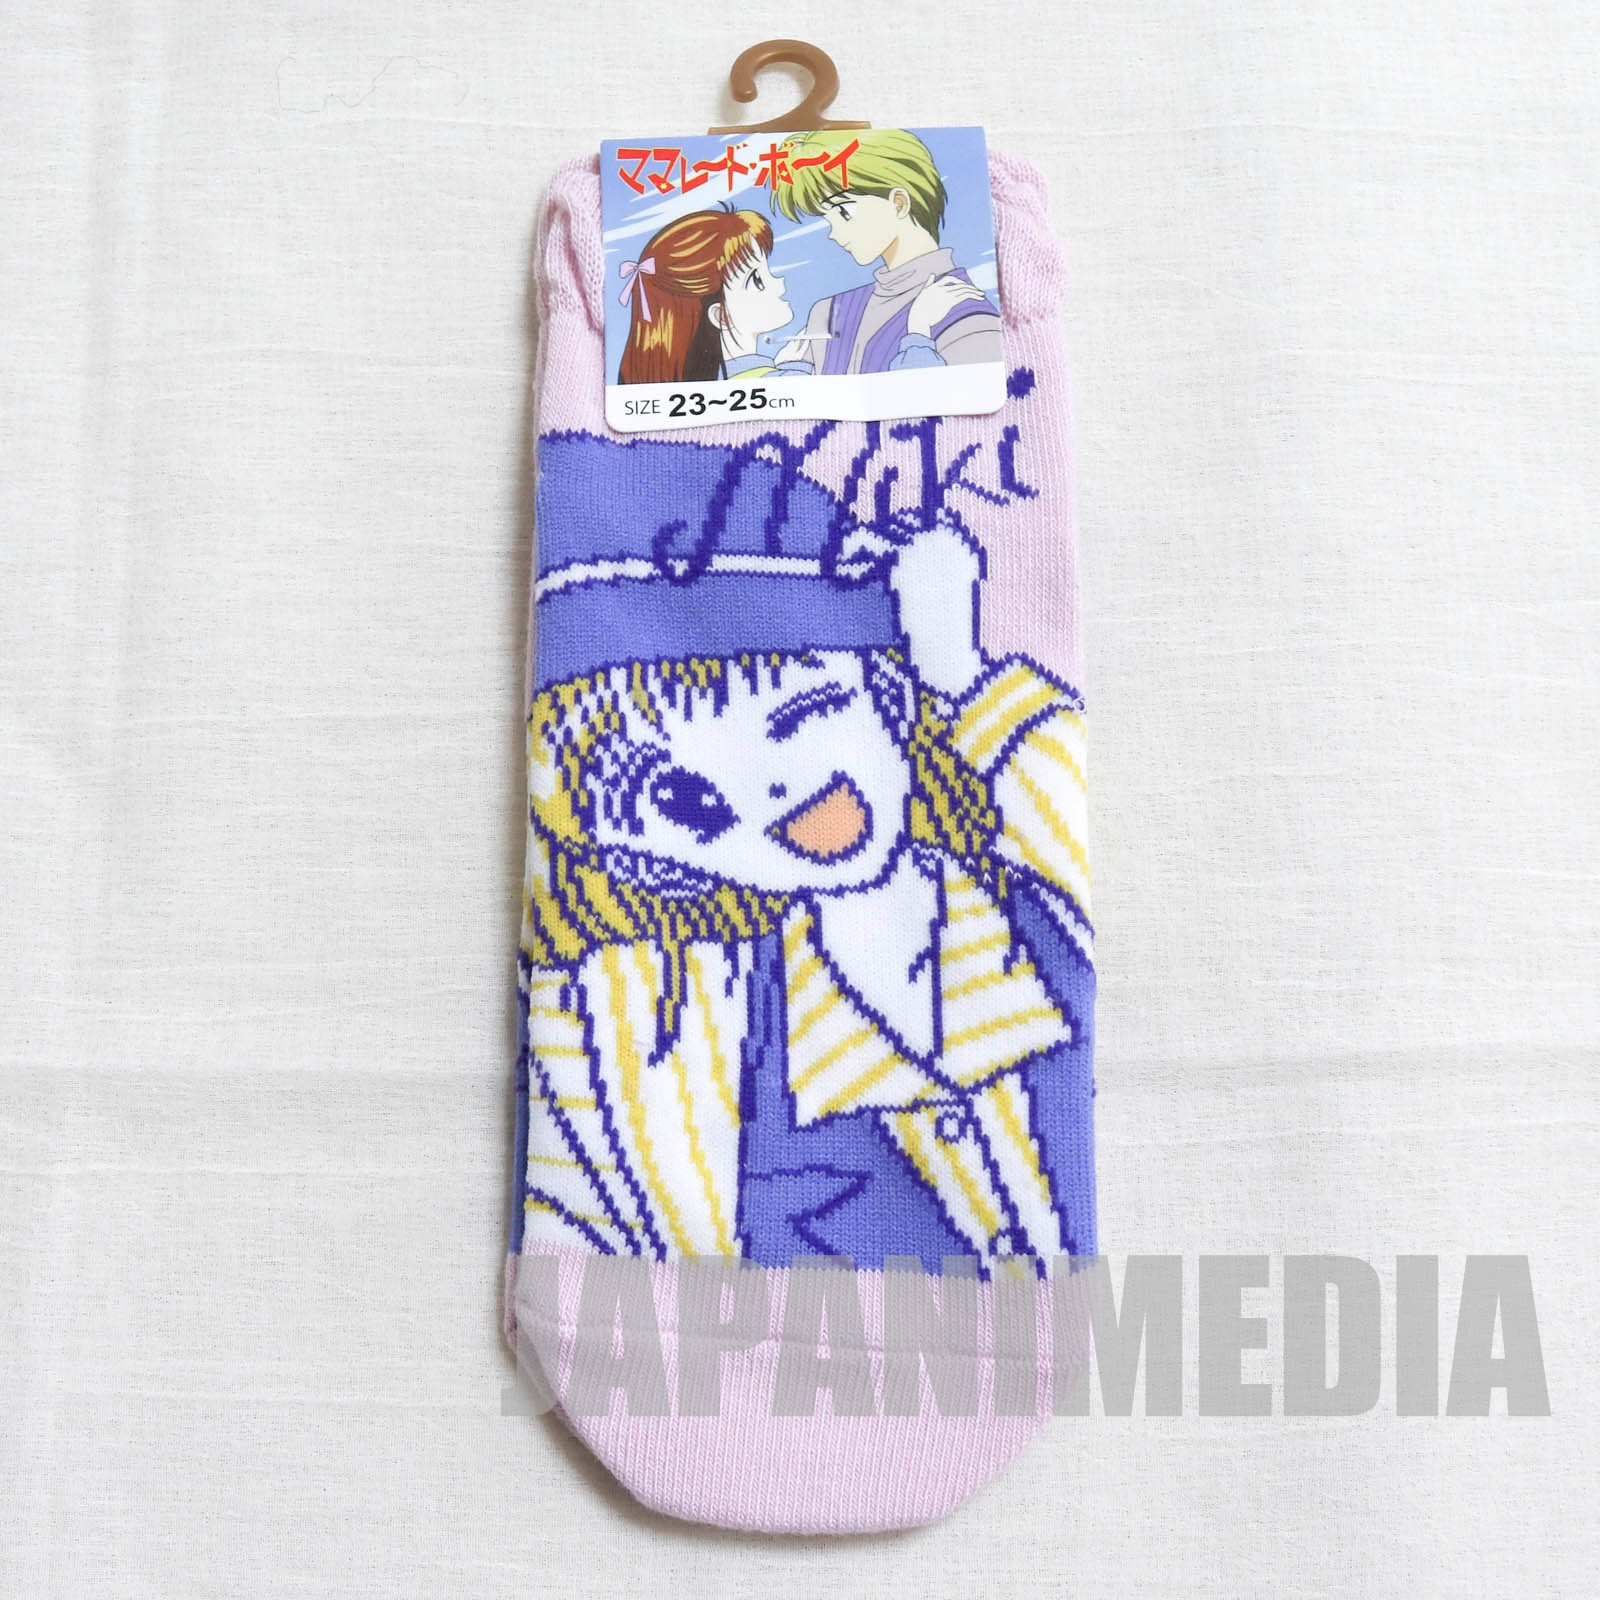 Marmalade Boy Miki Koishikawa a Pair of Socks Size 23-25cm JAPAN ANIME 2